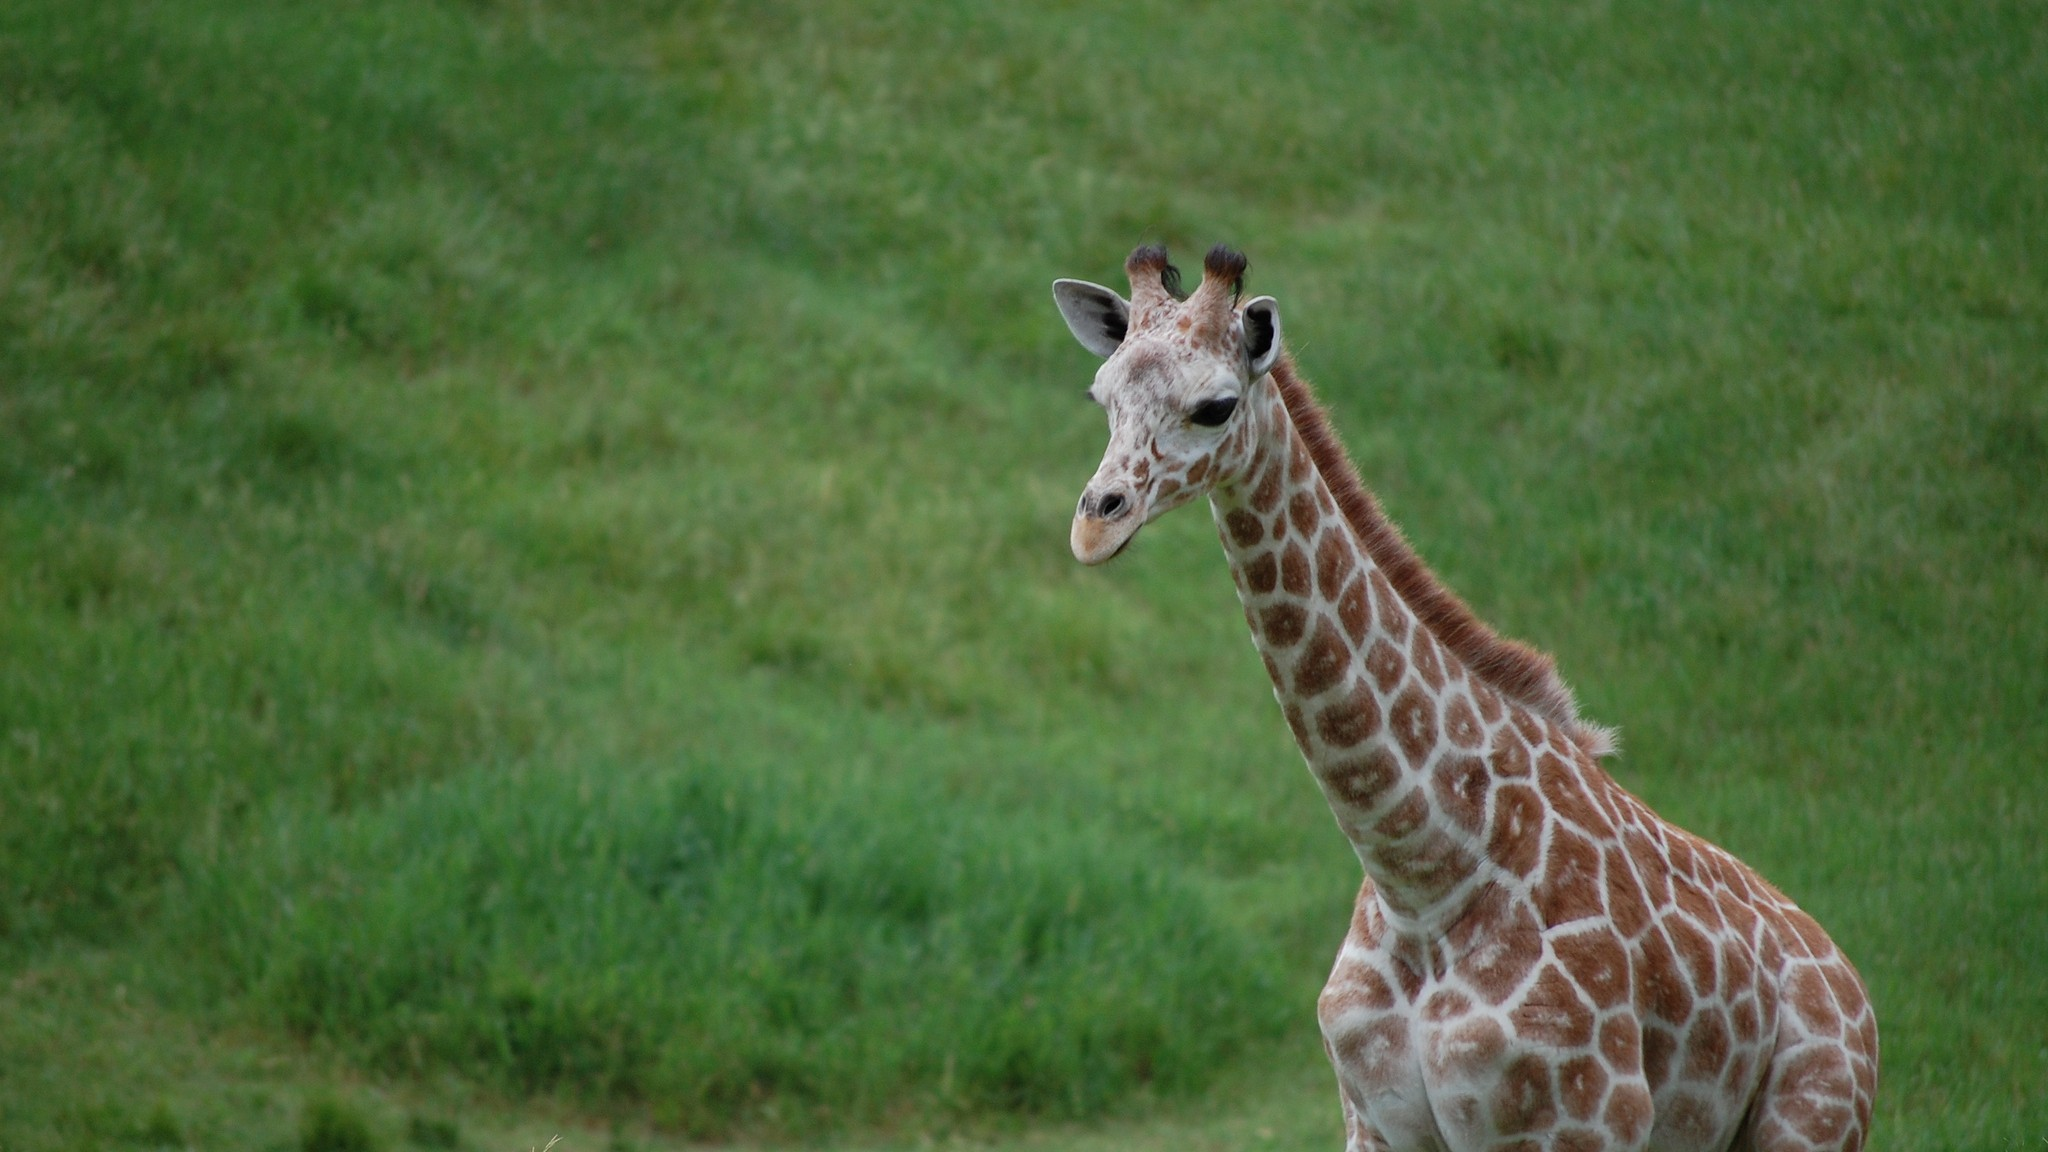 New Research Helps Explain Why Giraffes Have Such Long Necks